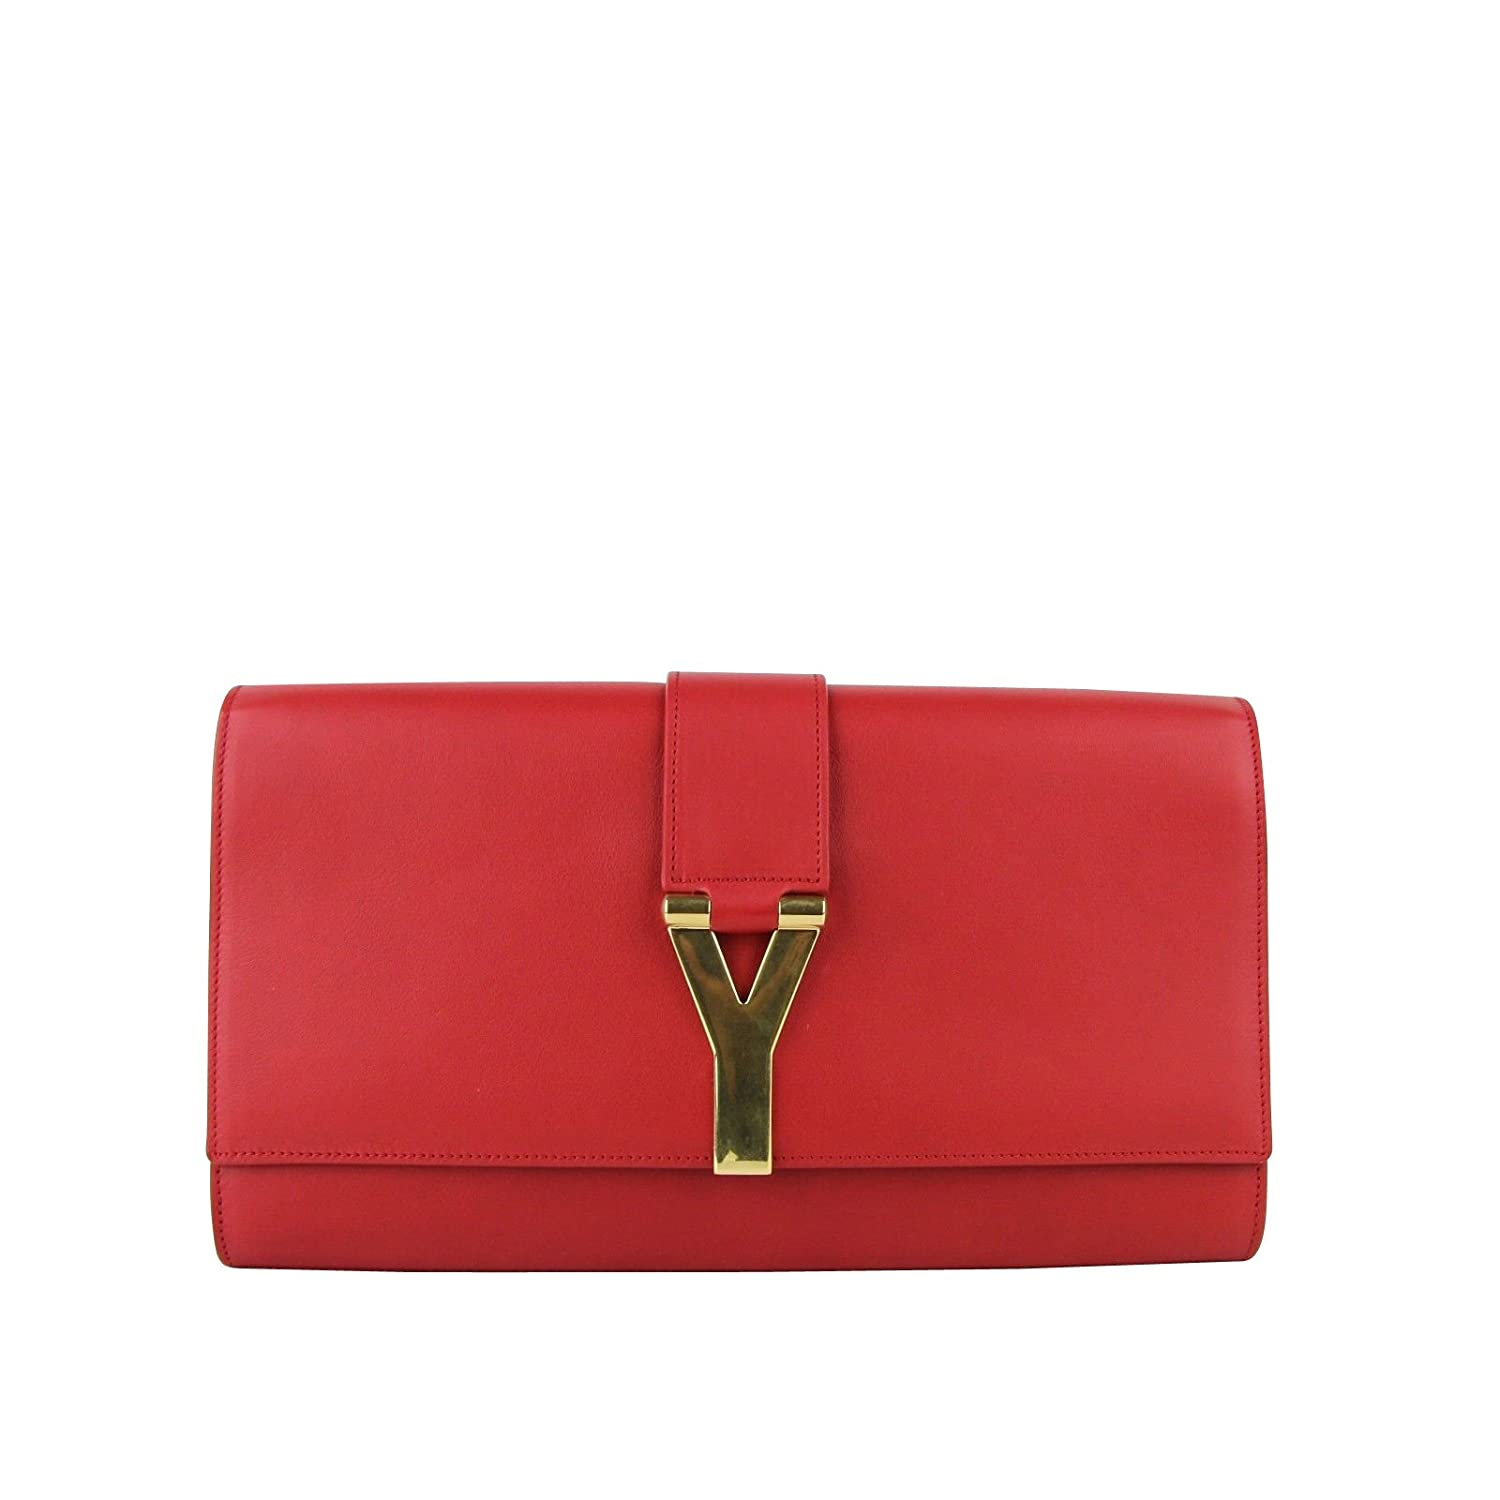 6fe41606 YSL Saint Laurent Classic Y Red Leather Paris Clutch 311213 6416 ...